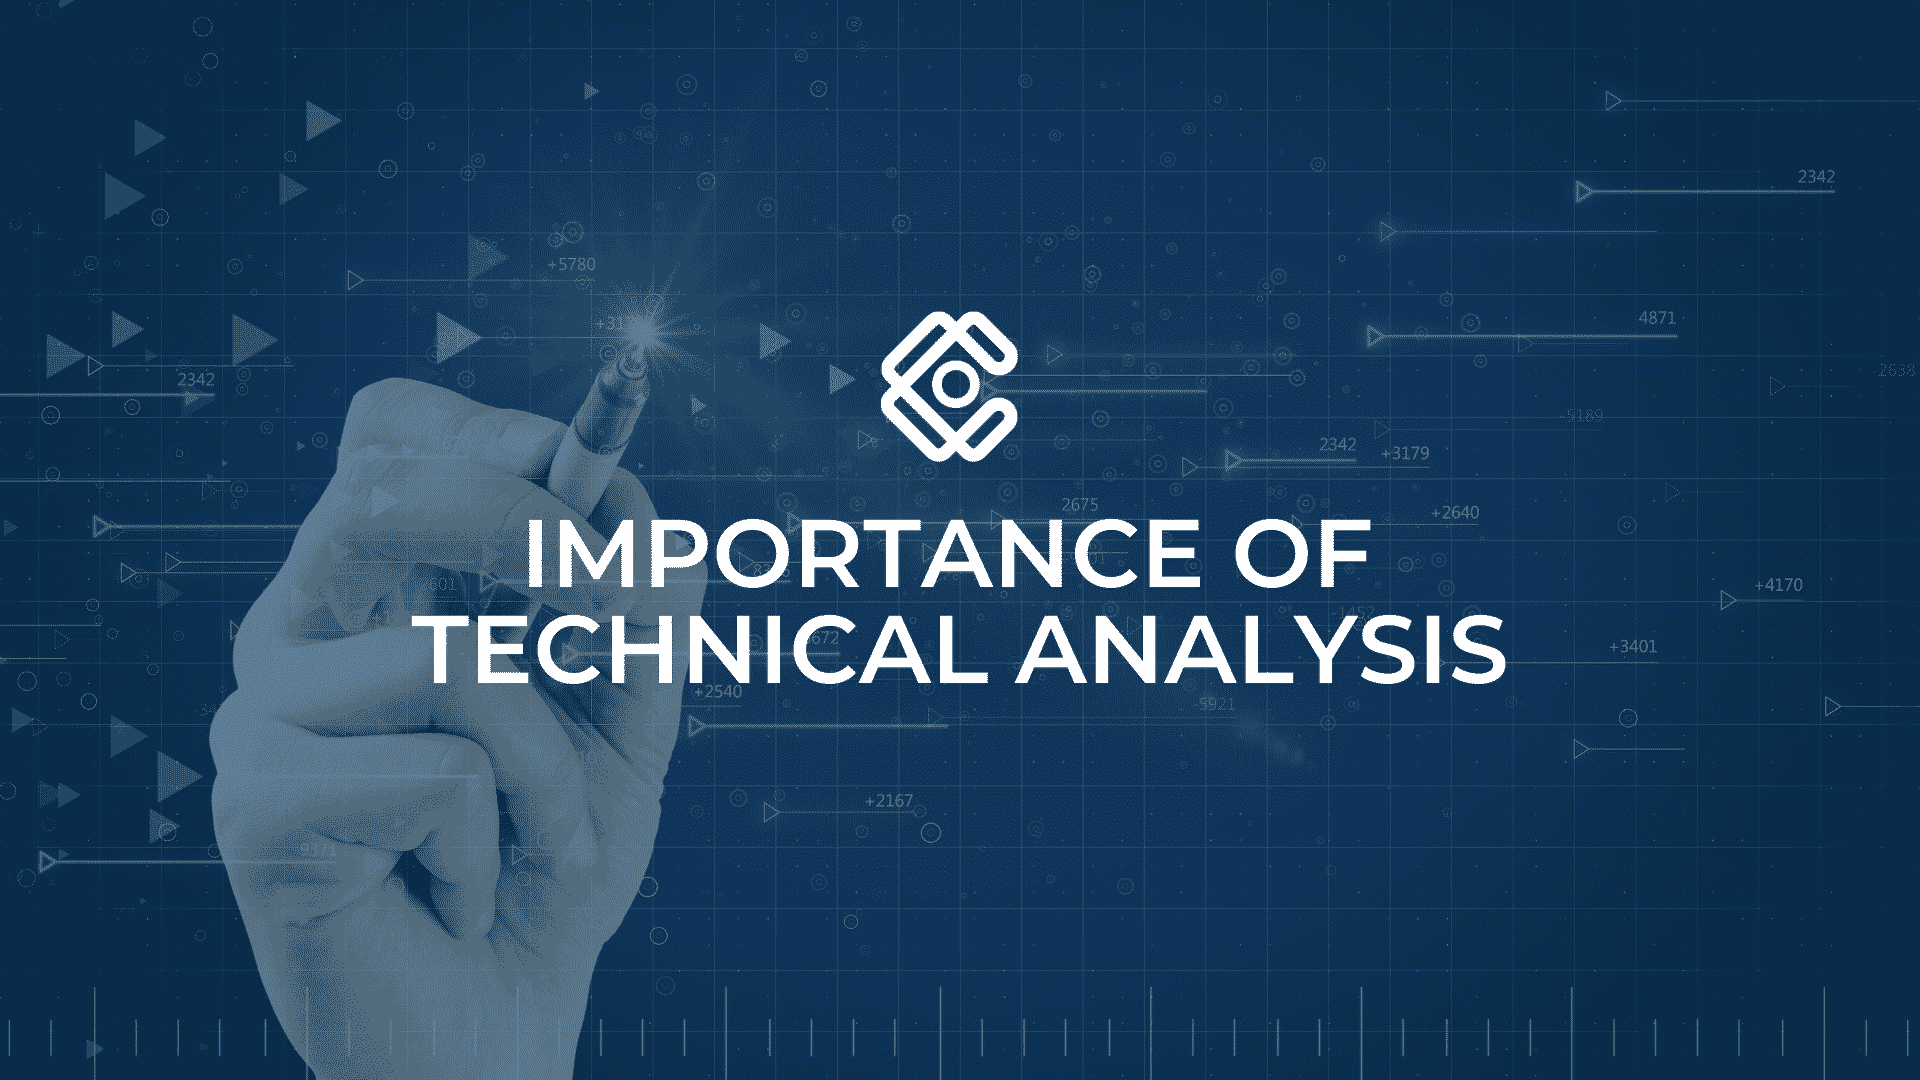 Importance of Technical Analysis.